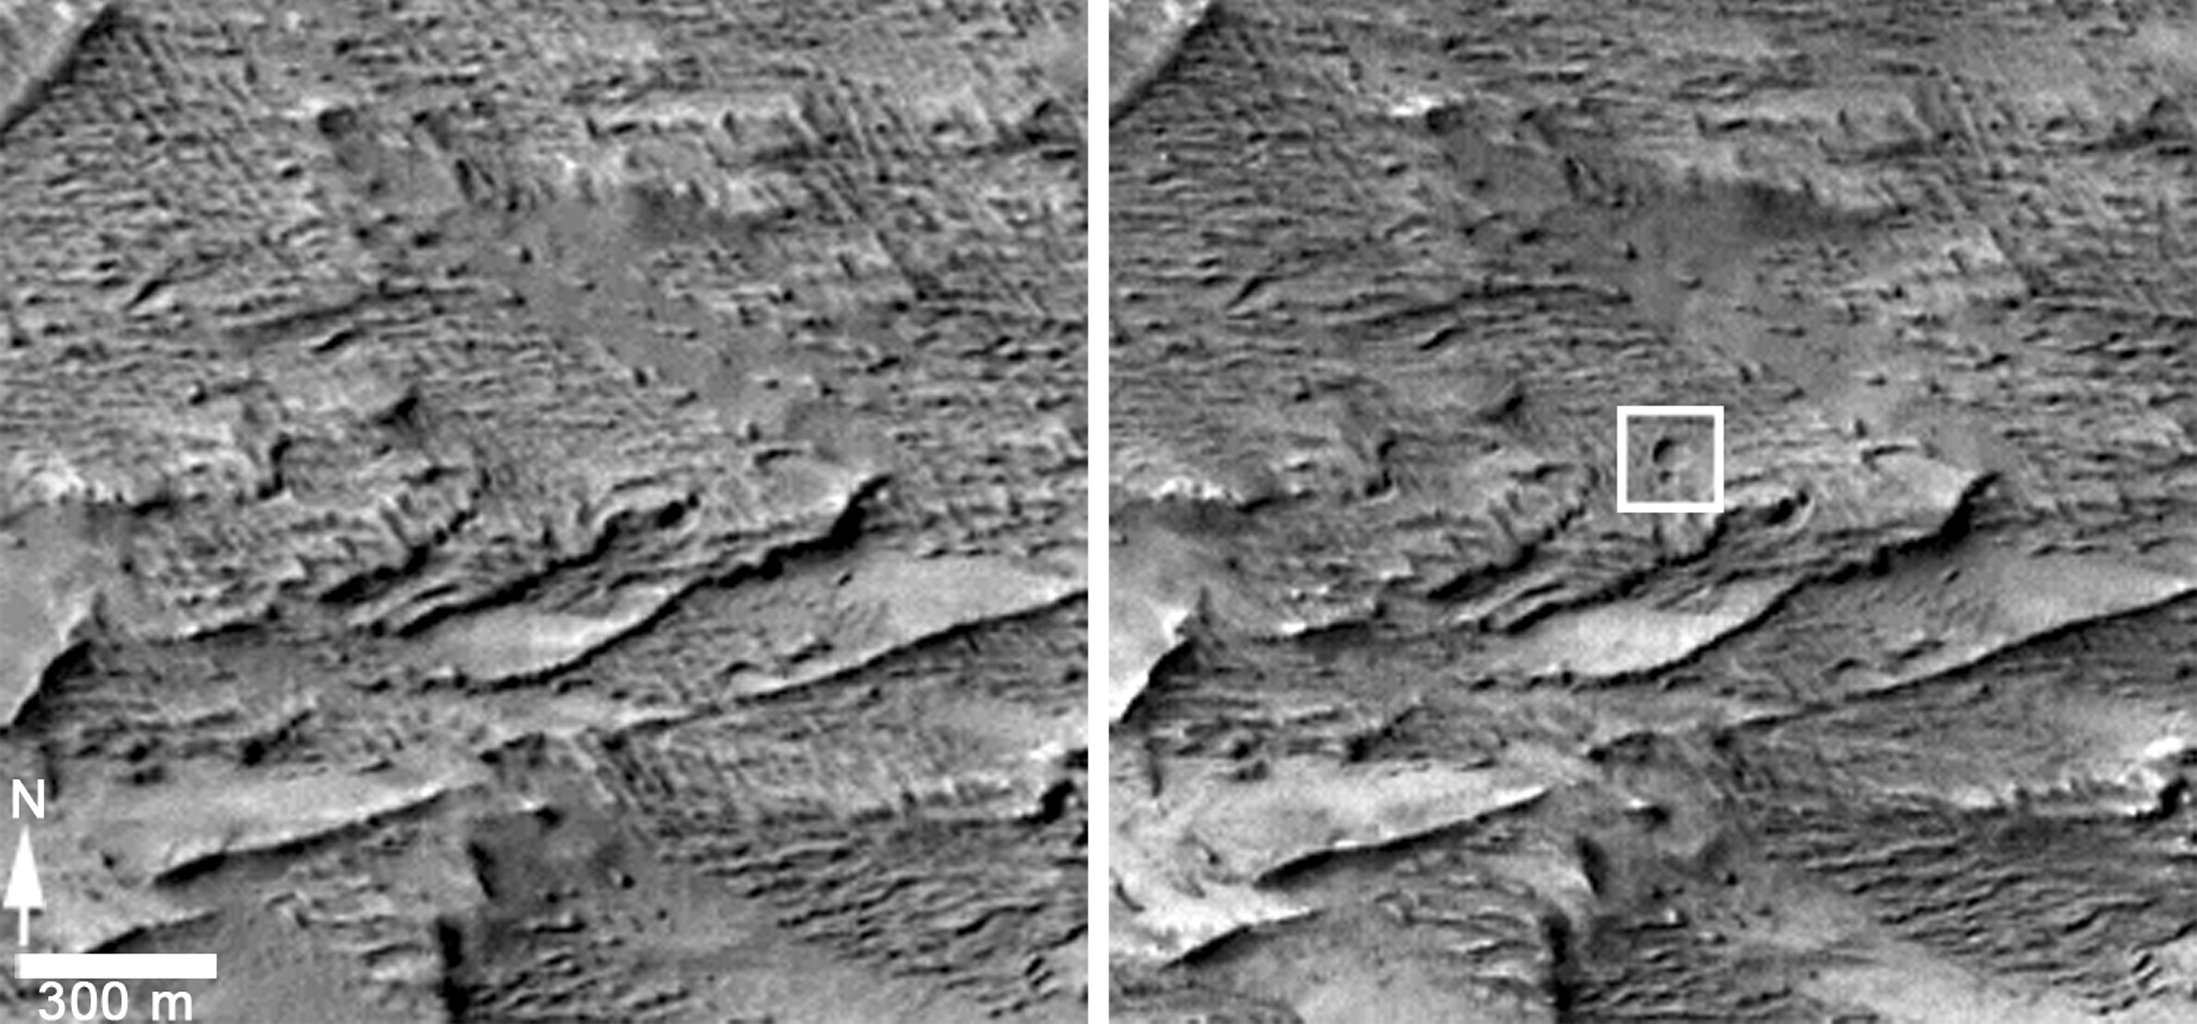 These images from the Context Camera on NASA's Mars Reconnaissance Orbiter were taken before and after an apparent impact scar appeared in the area in March 2012. Comparing the images confirms that fresh craters appeared during the interval.